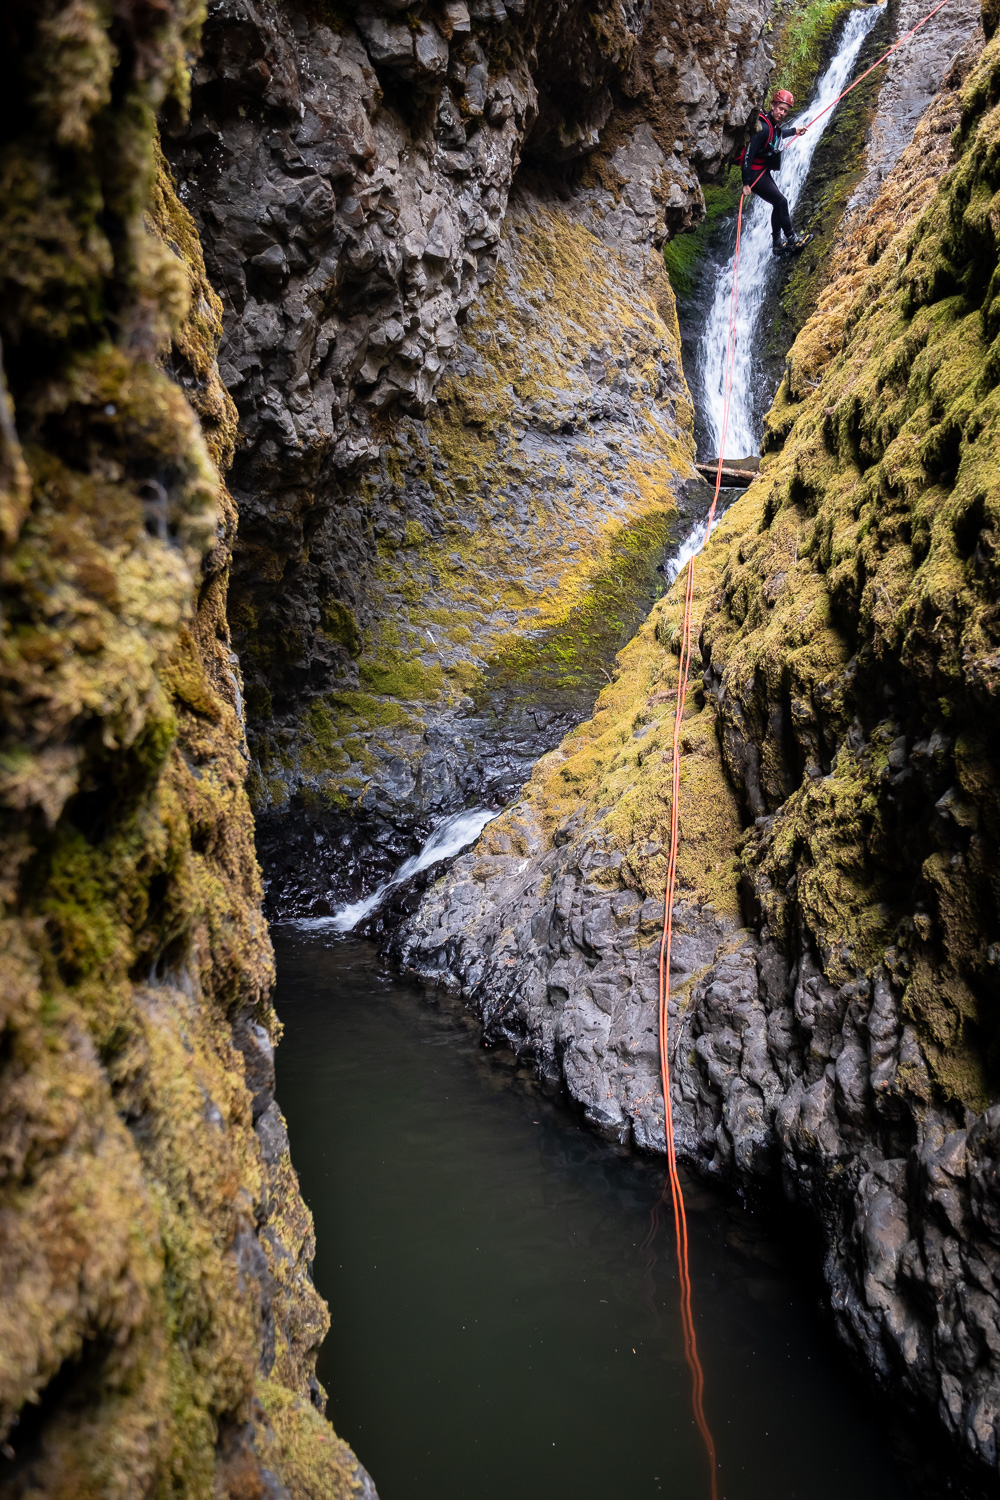 The second rappel on Devils Creek